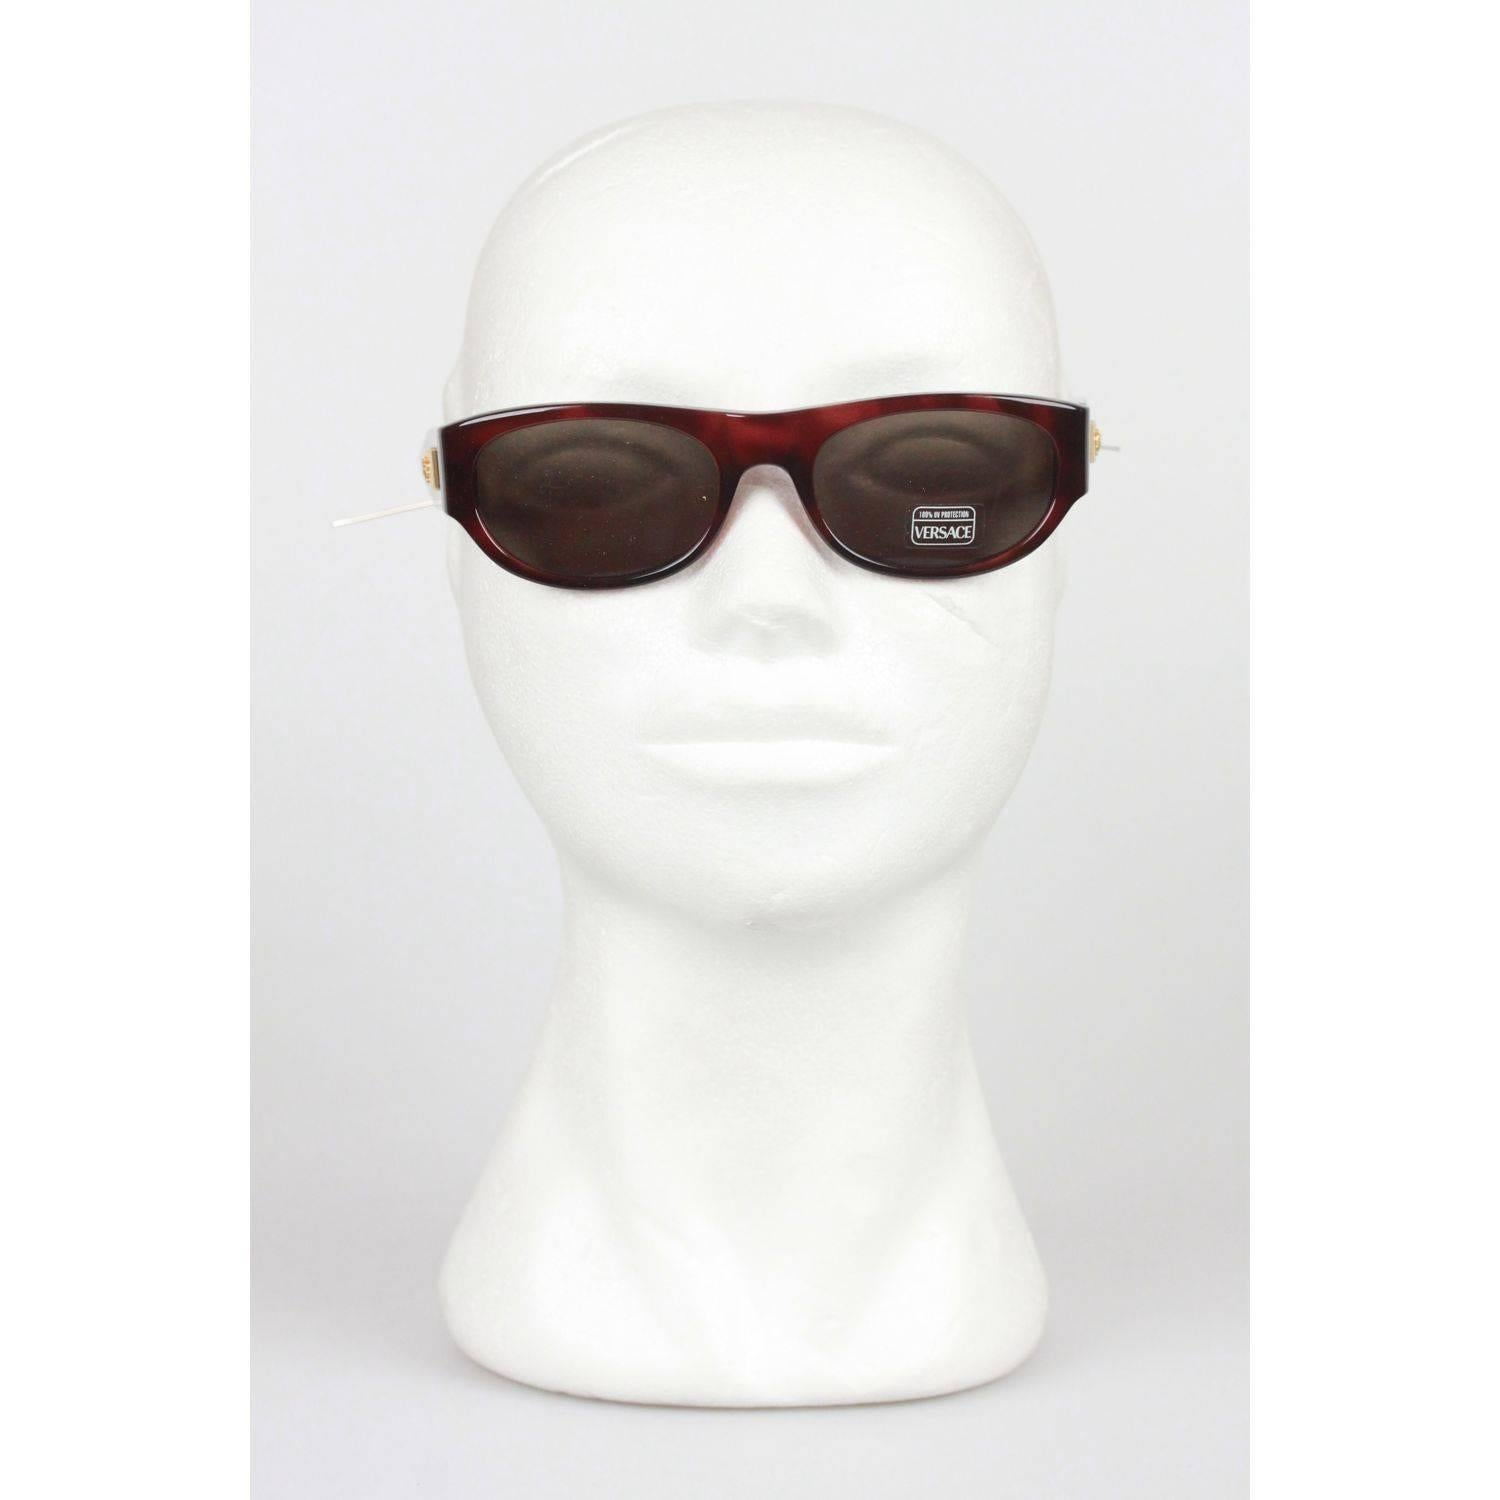 fe3d6f66a989 GIANNI VERSACE MEDUSA Brown Sunglasses 474 A Col 900 52mm NOS For Sale at  1stdibs